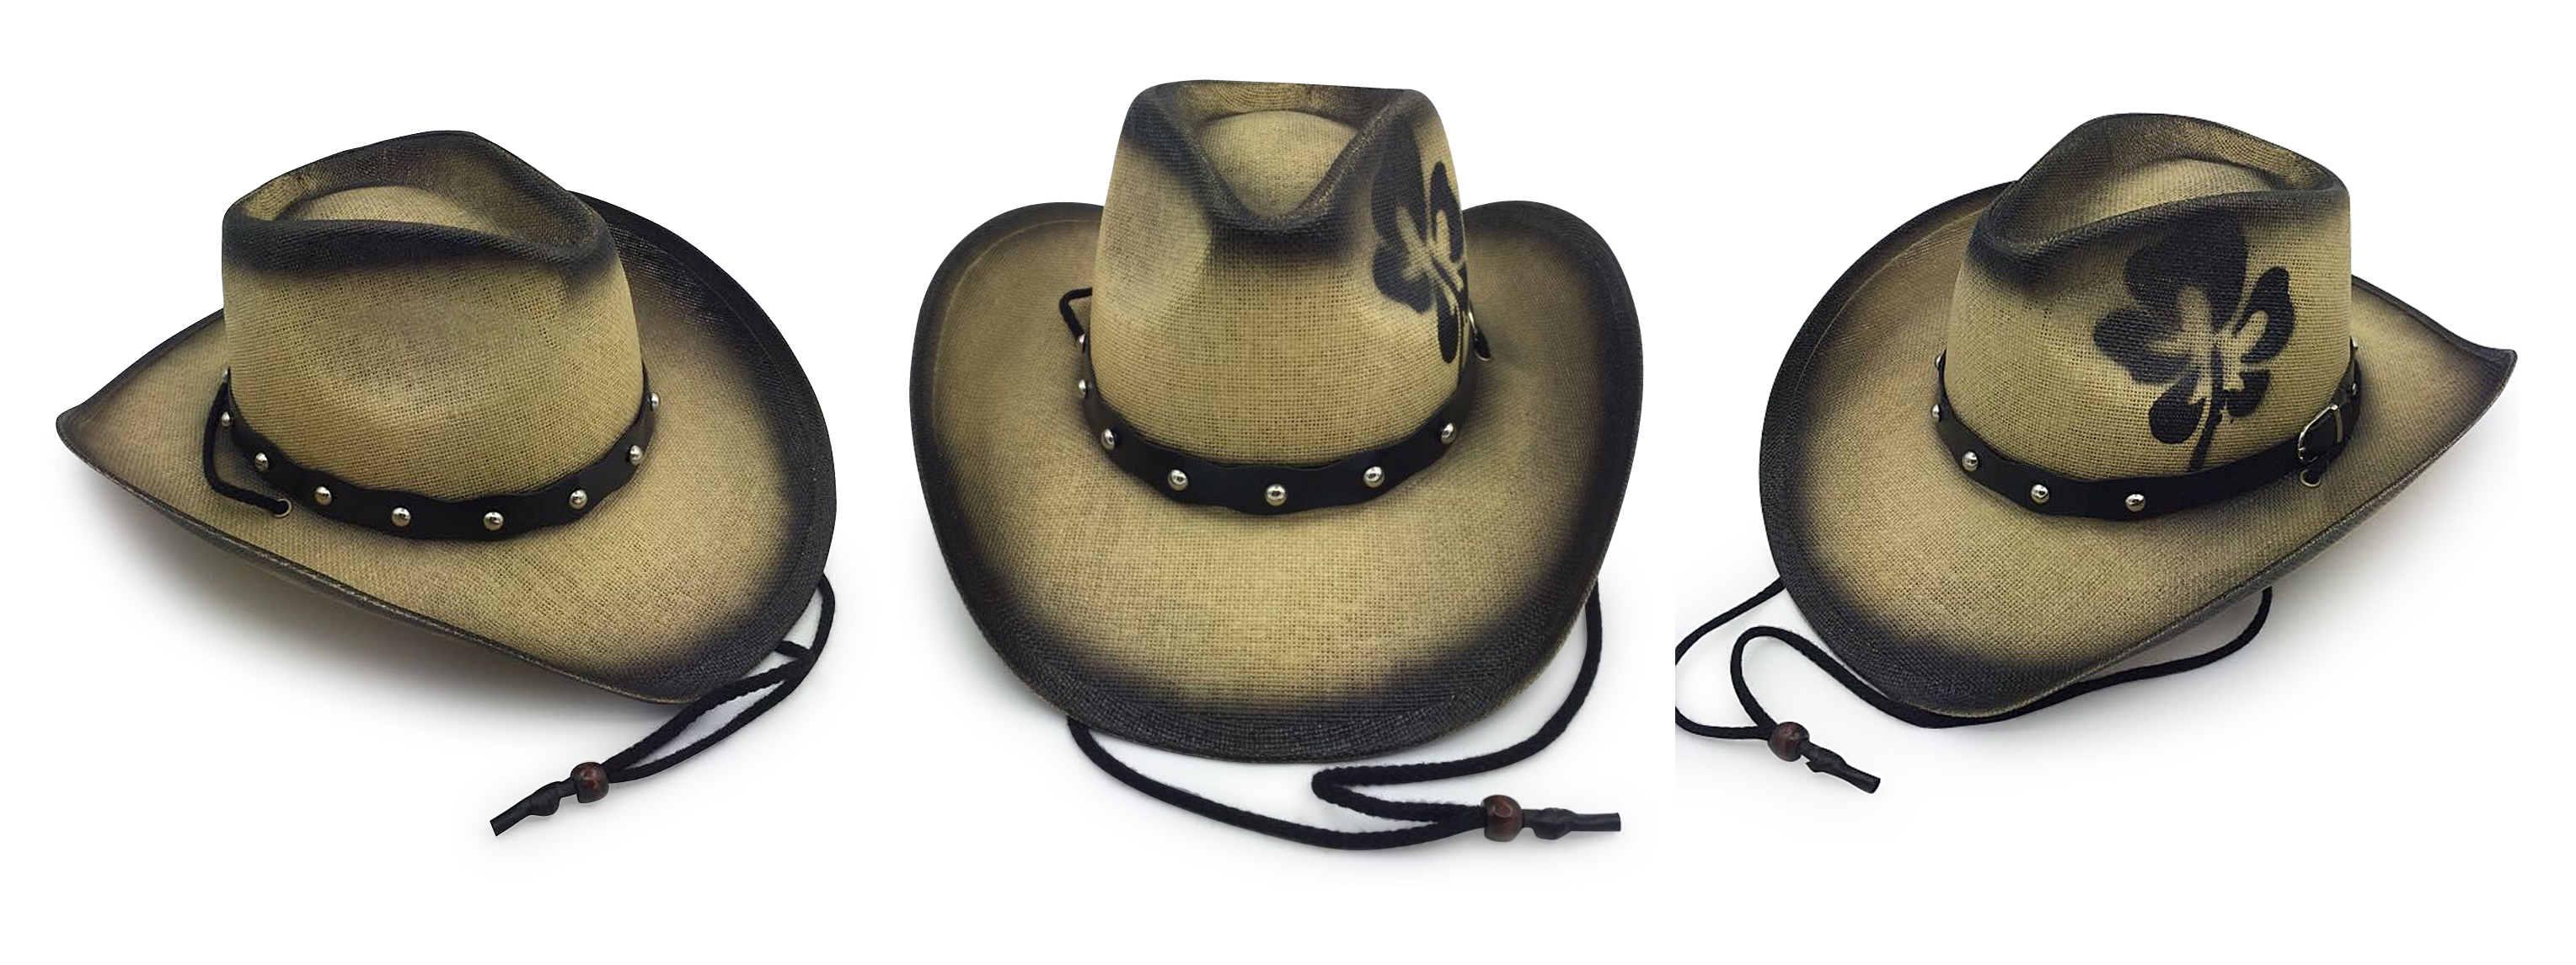 844a34c8dda08 Wholesale Cowboy Hat now available at Wholesale Central - Items 41 - 80